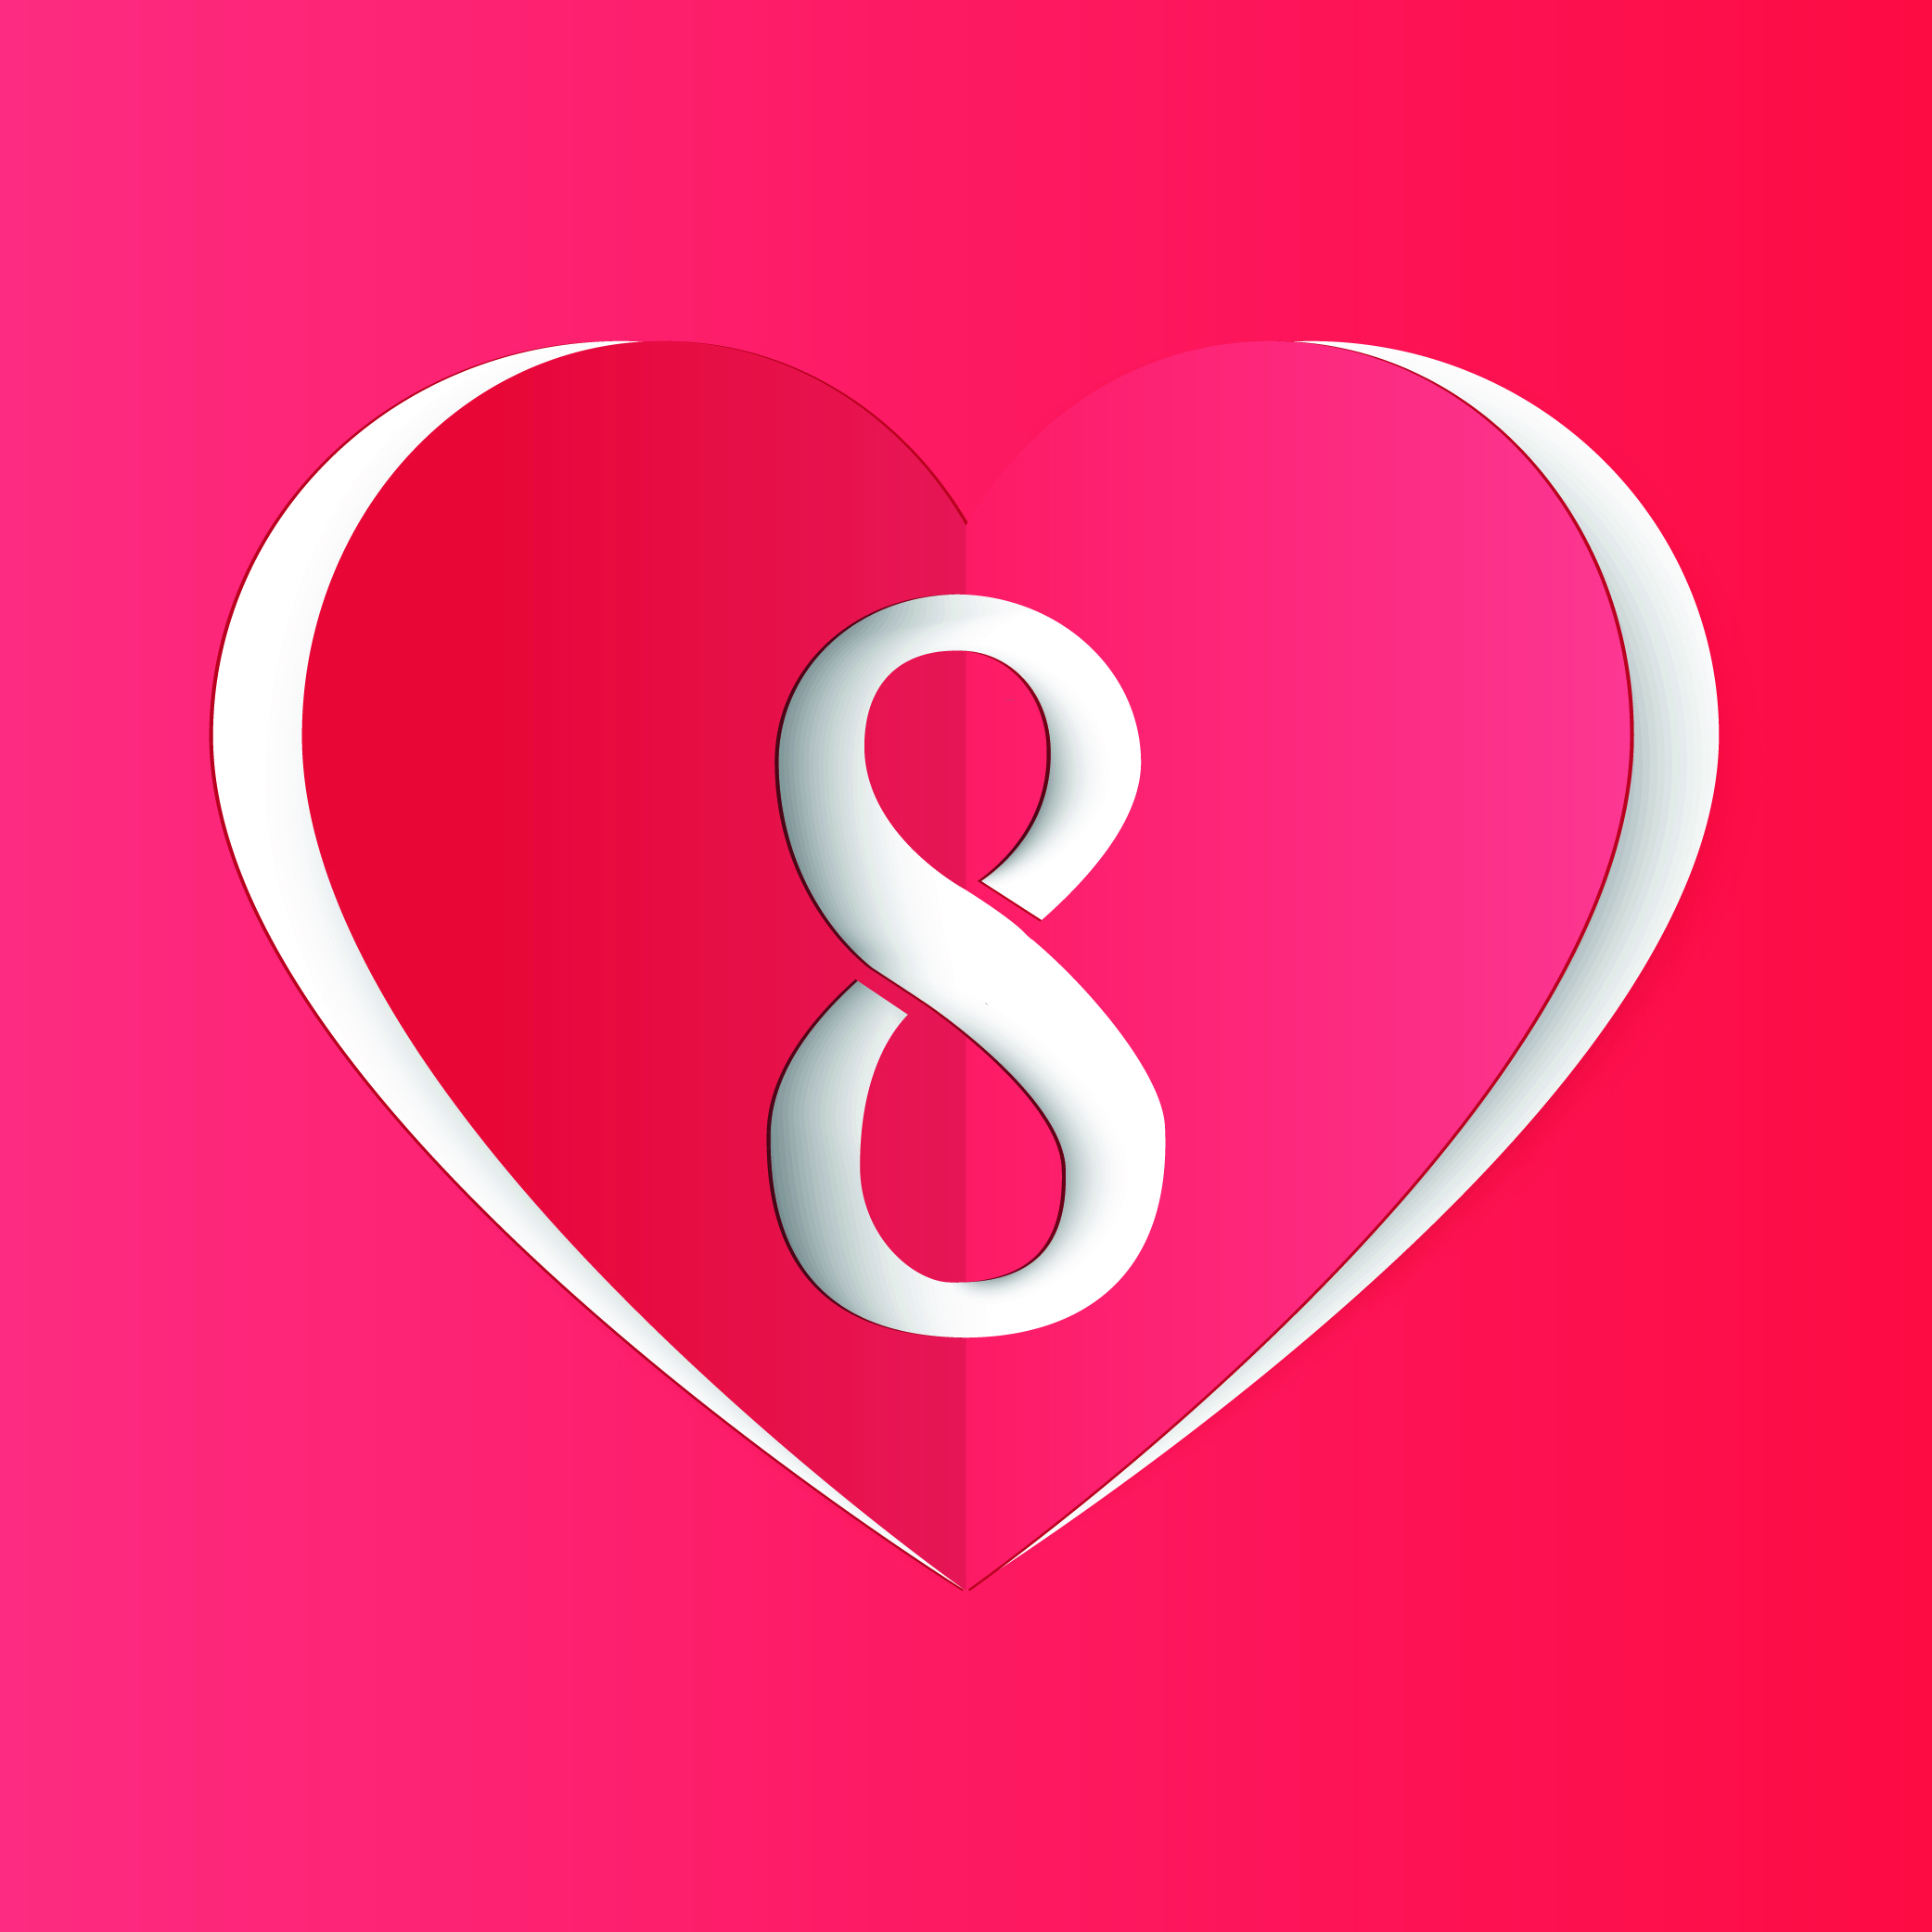 8 reasons within a heart